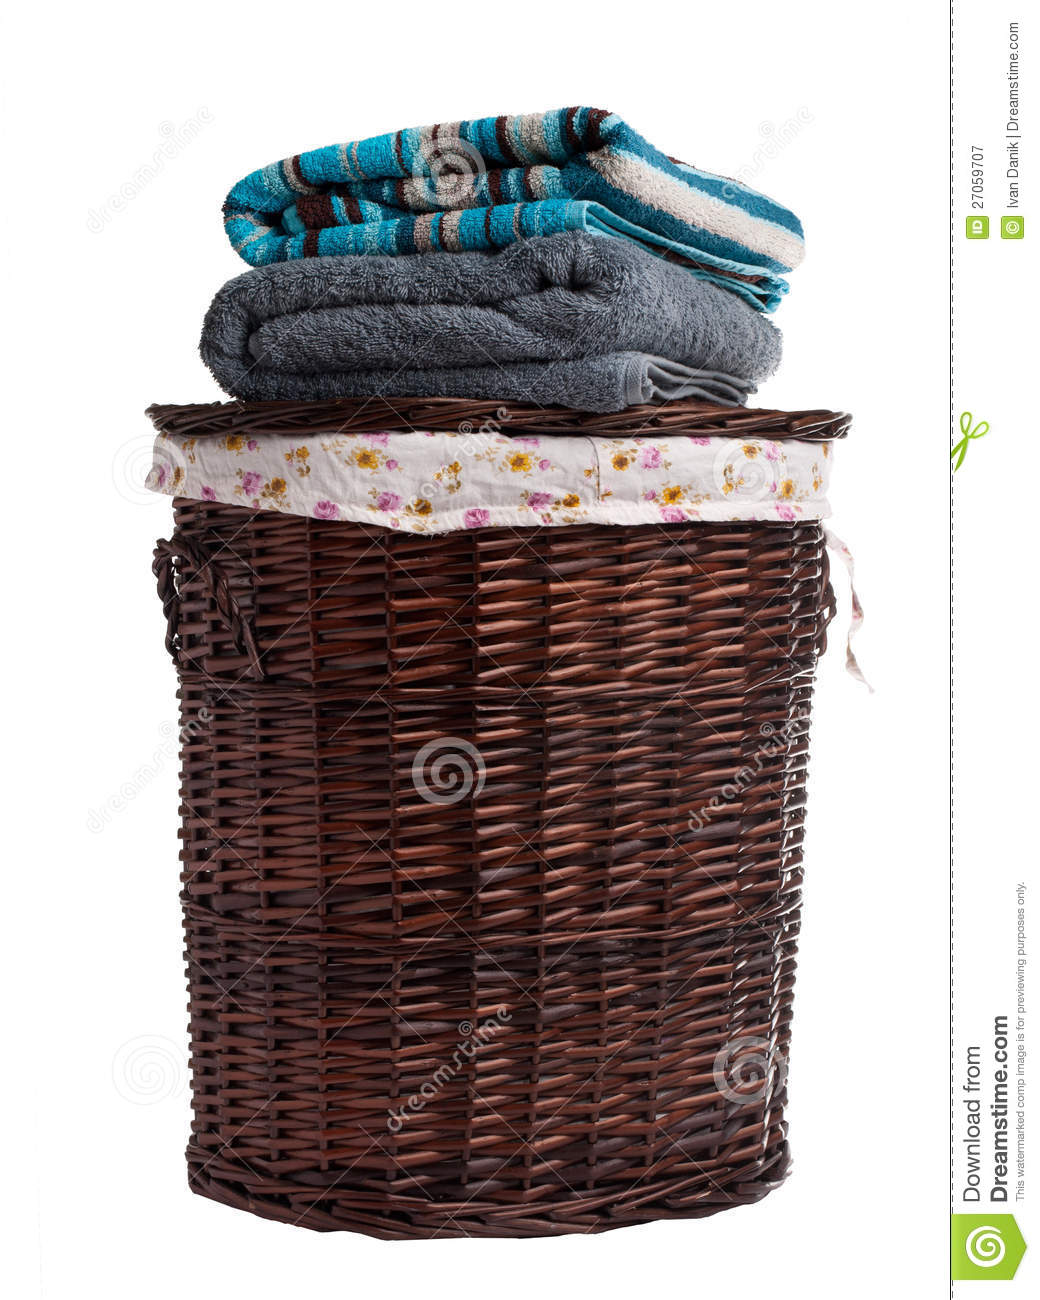 Animal Wicker Hamper Wicker Hamper Royalty Free Stock Photography Image 27059707